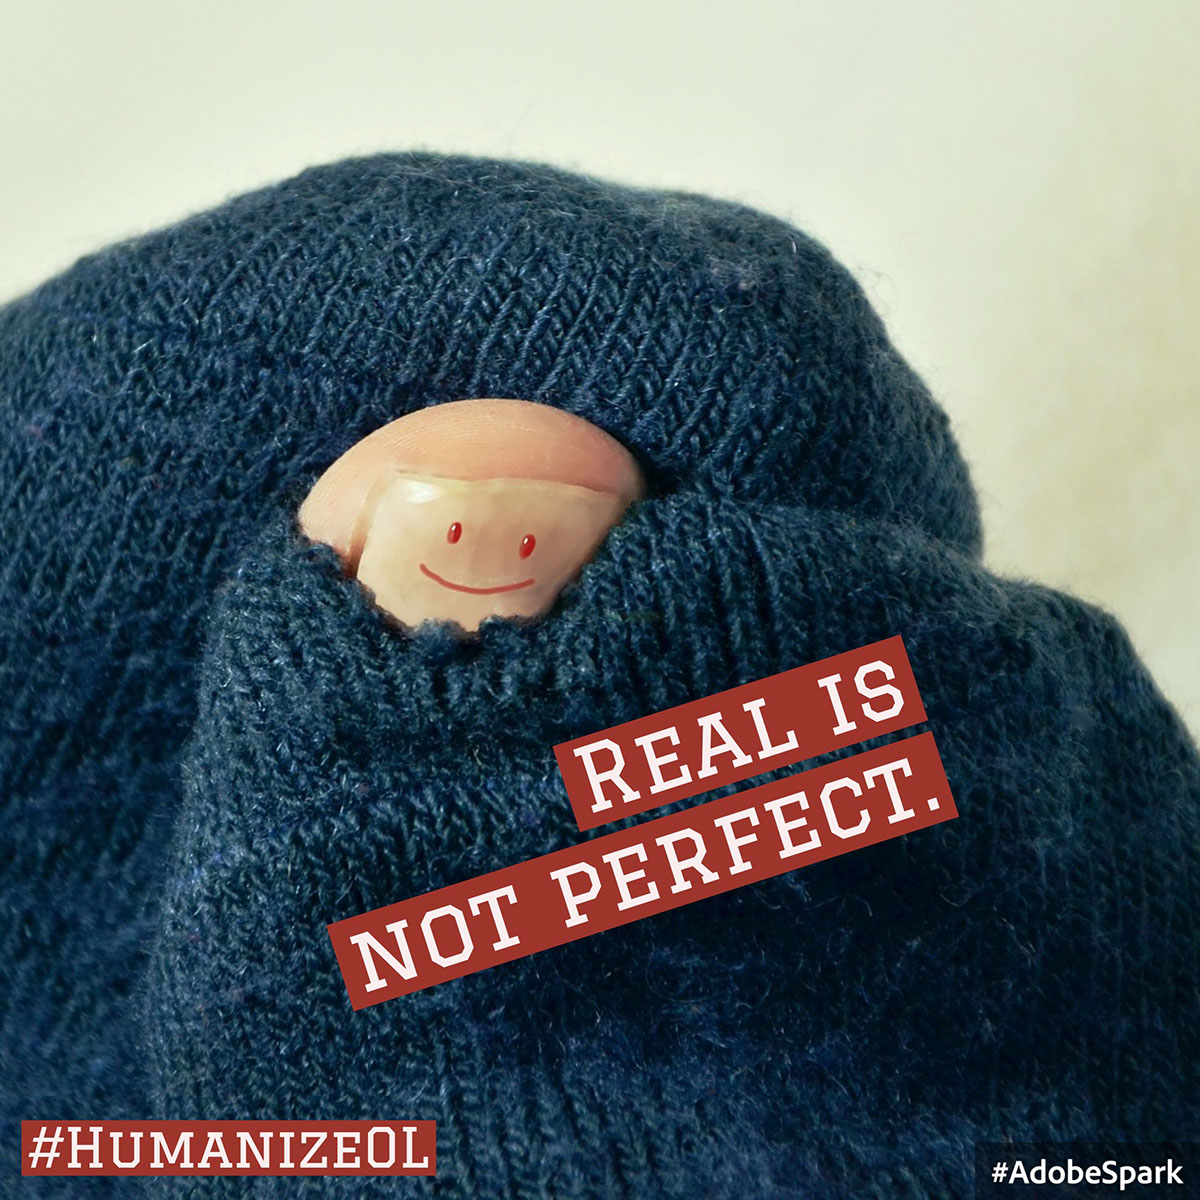 Real is not perfect.